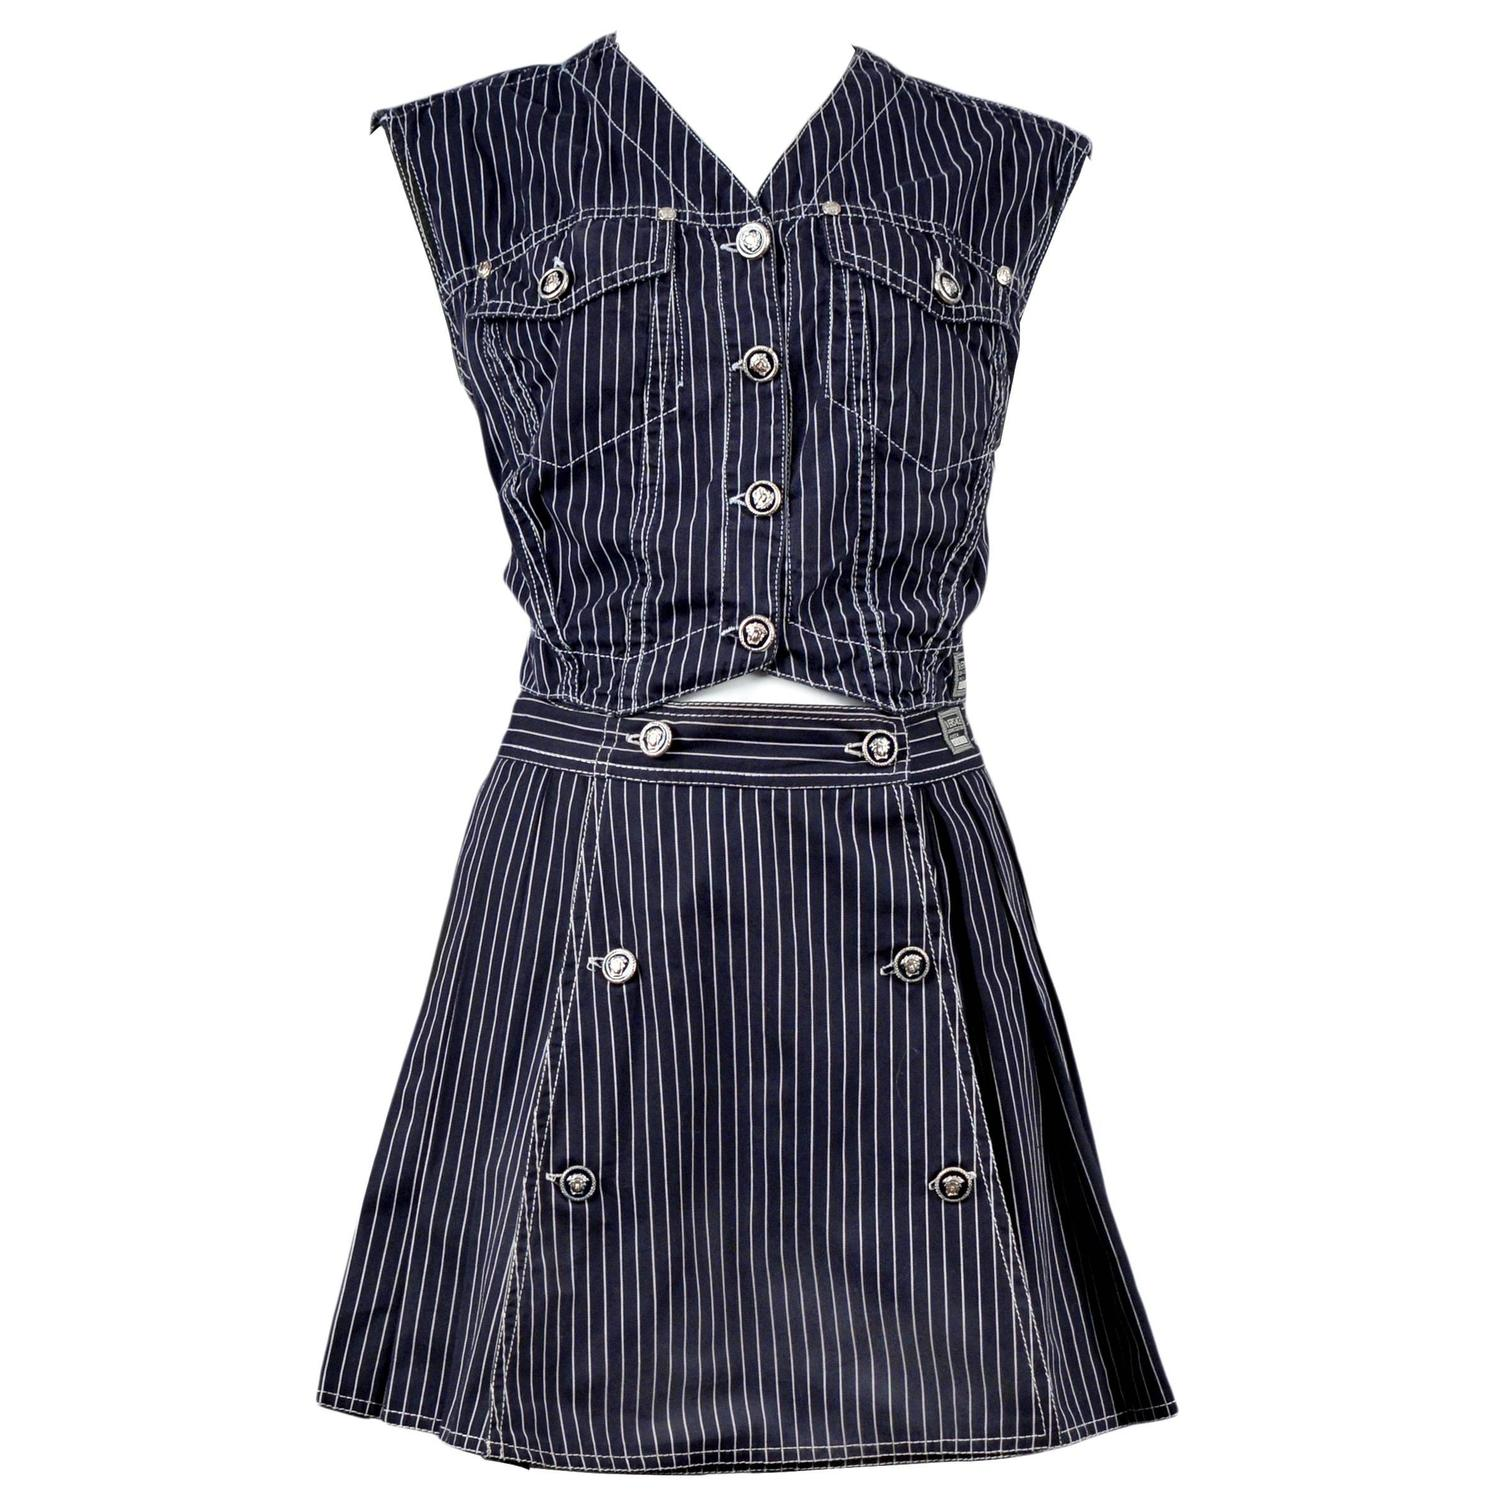 versace denim vest and skirt ensemble for sale at 1stdibs